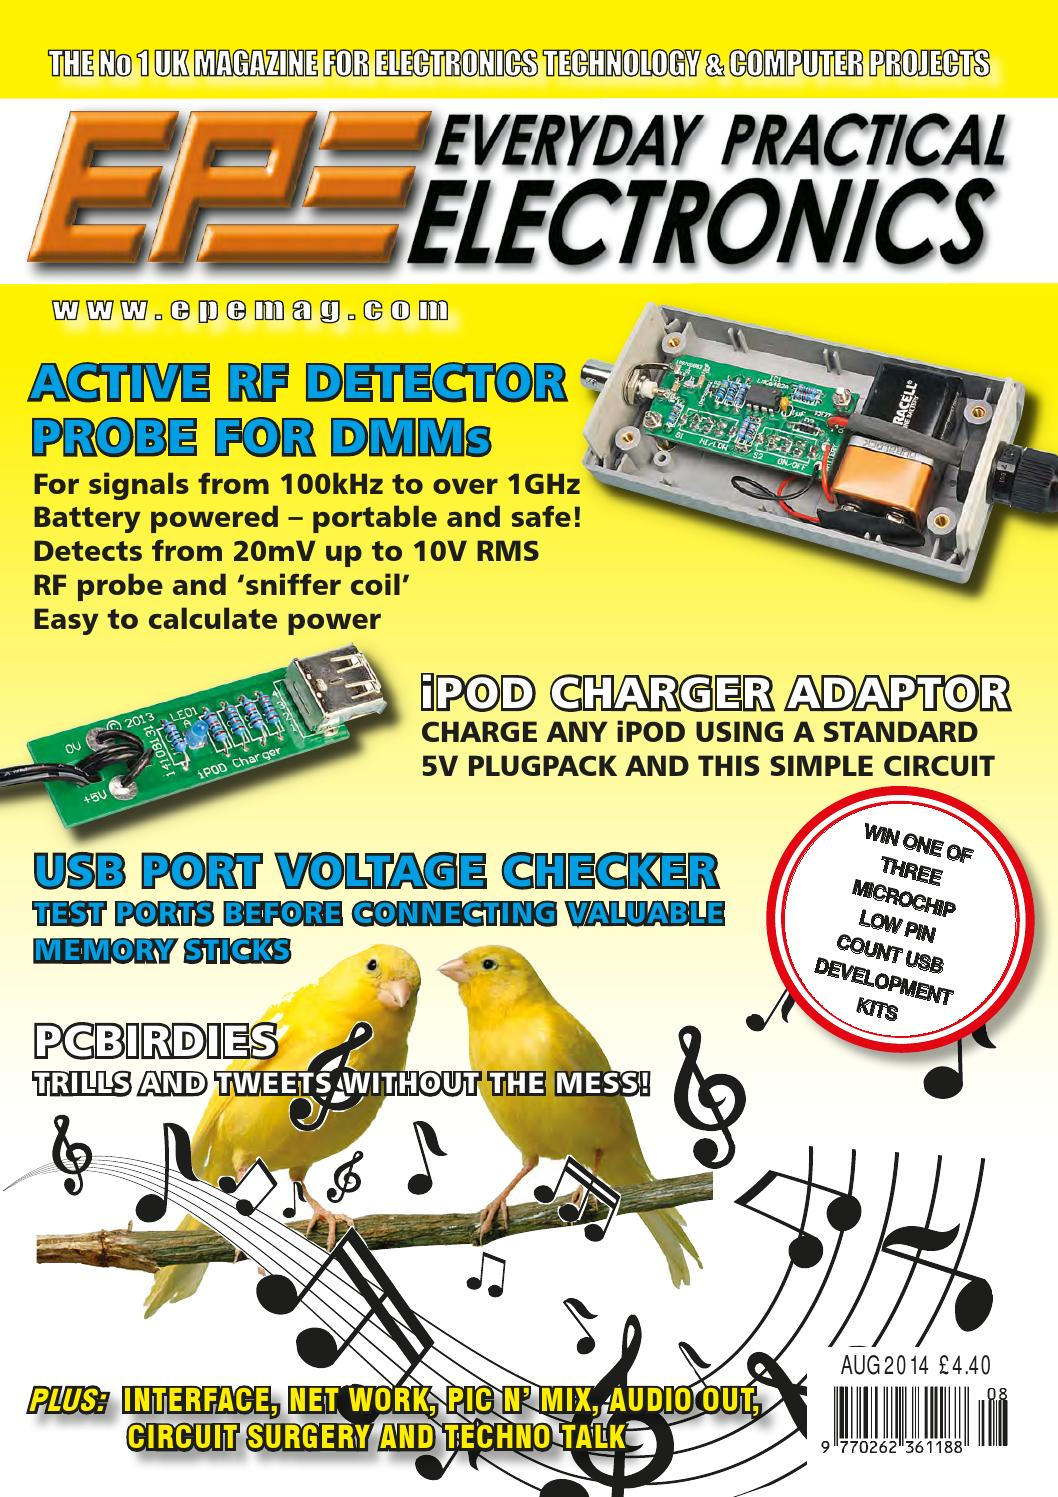 Everyday Practical Electronics 2014 08 By Yurgen Issuu Atmel Avr Minimus Based Timer And Solid State Relay Control For Uv